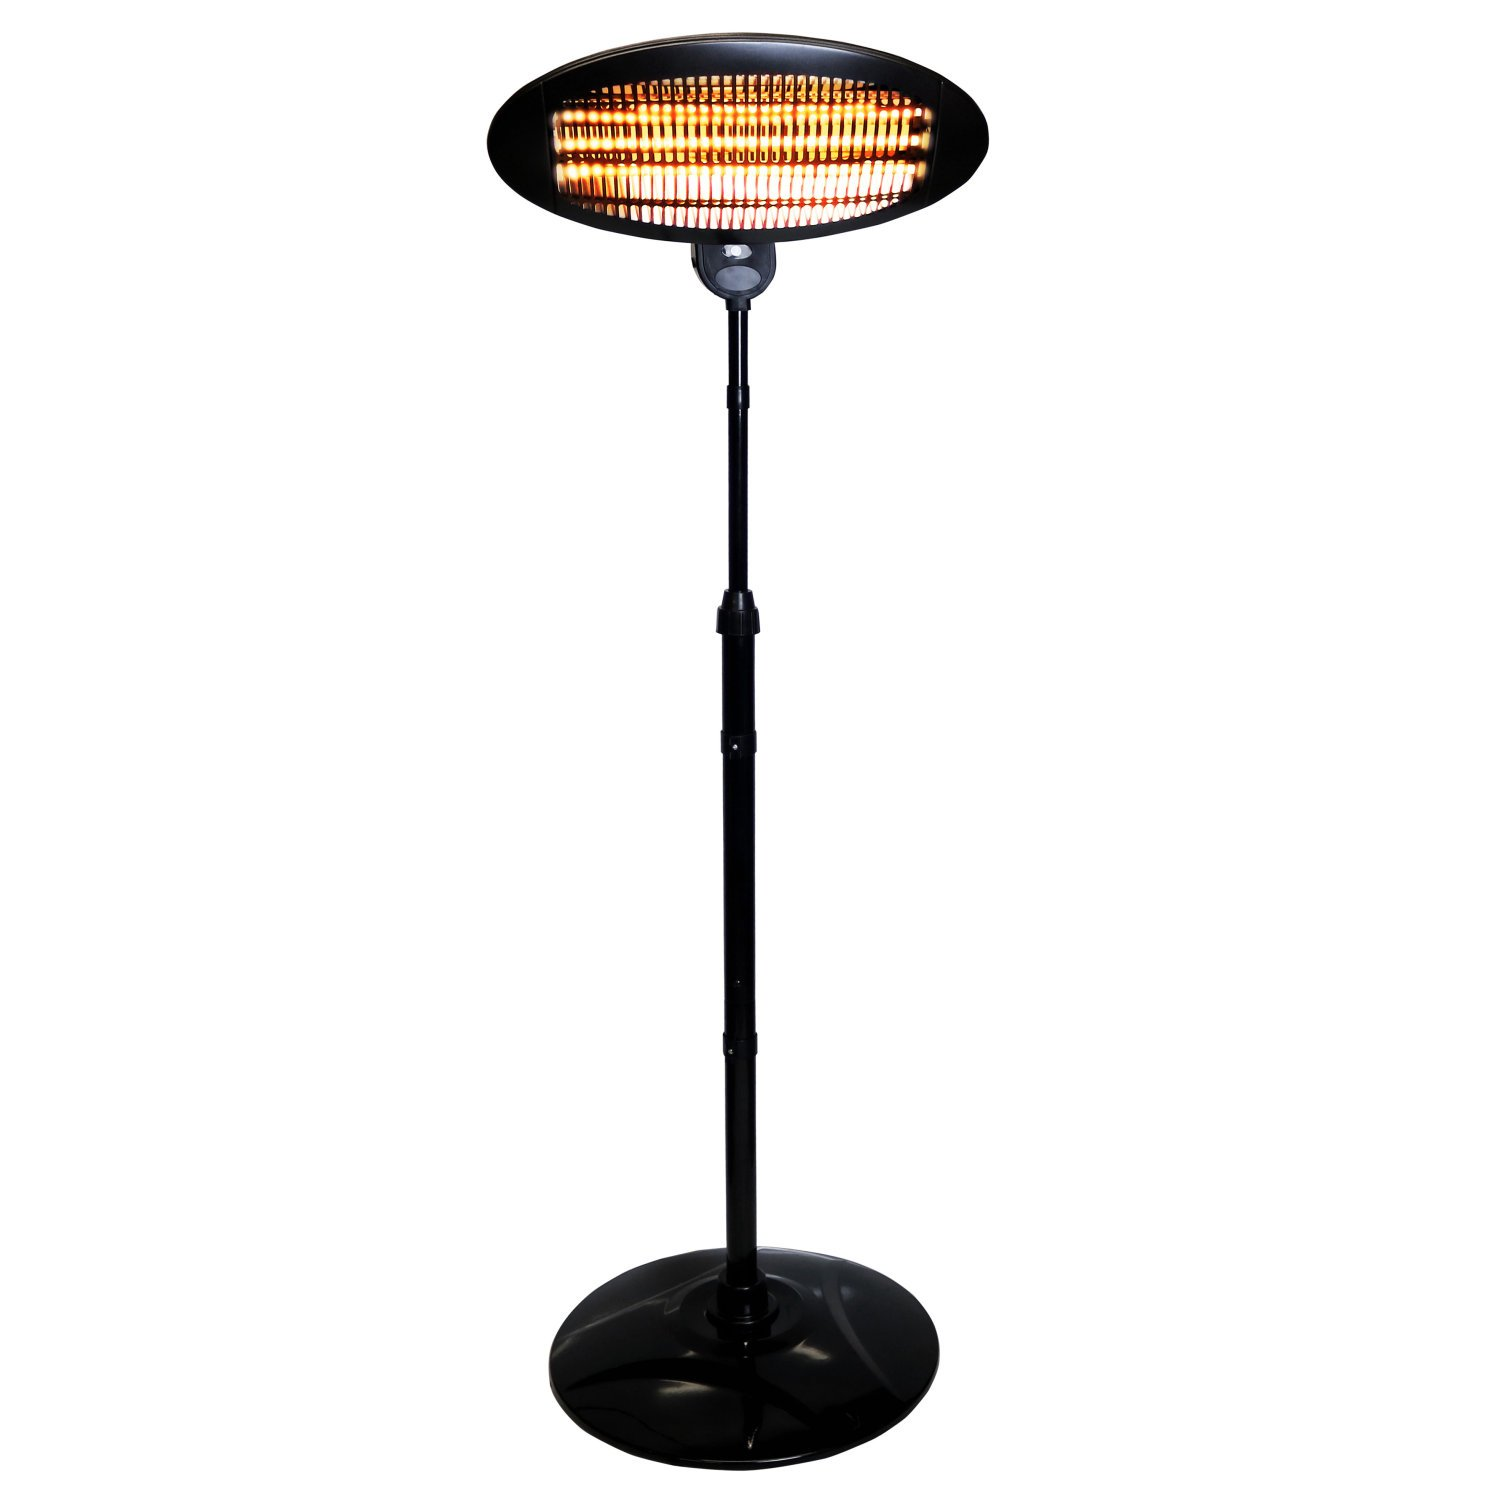 Oypla Electrical 2KW Quartz Free Standing Outdoor Electric Garden Patio  Heater